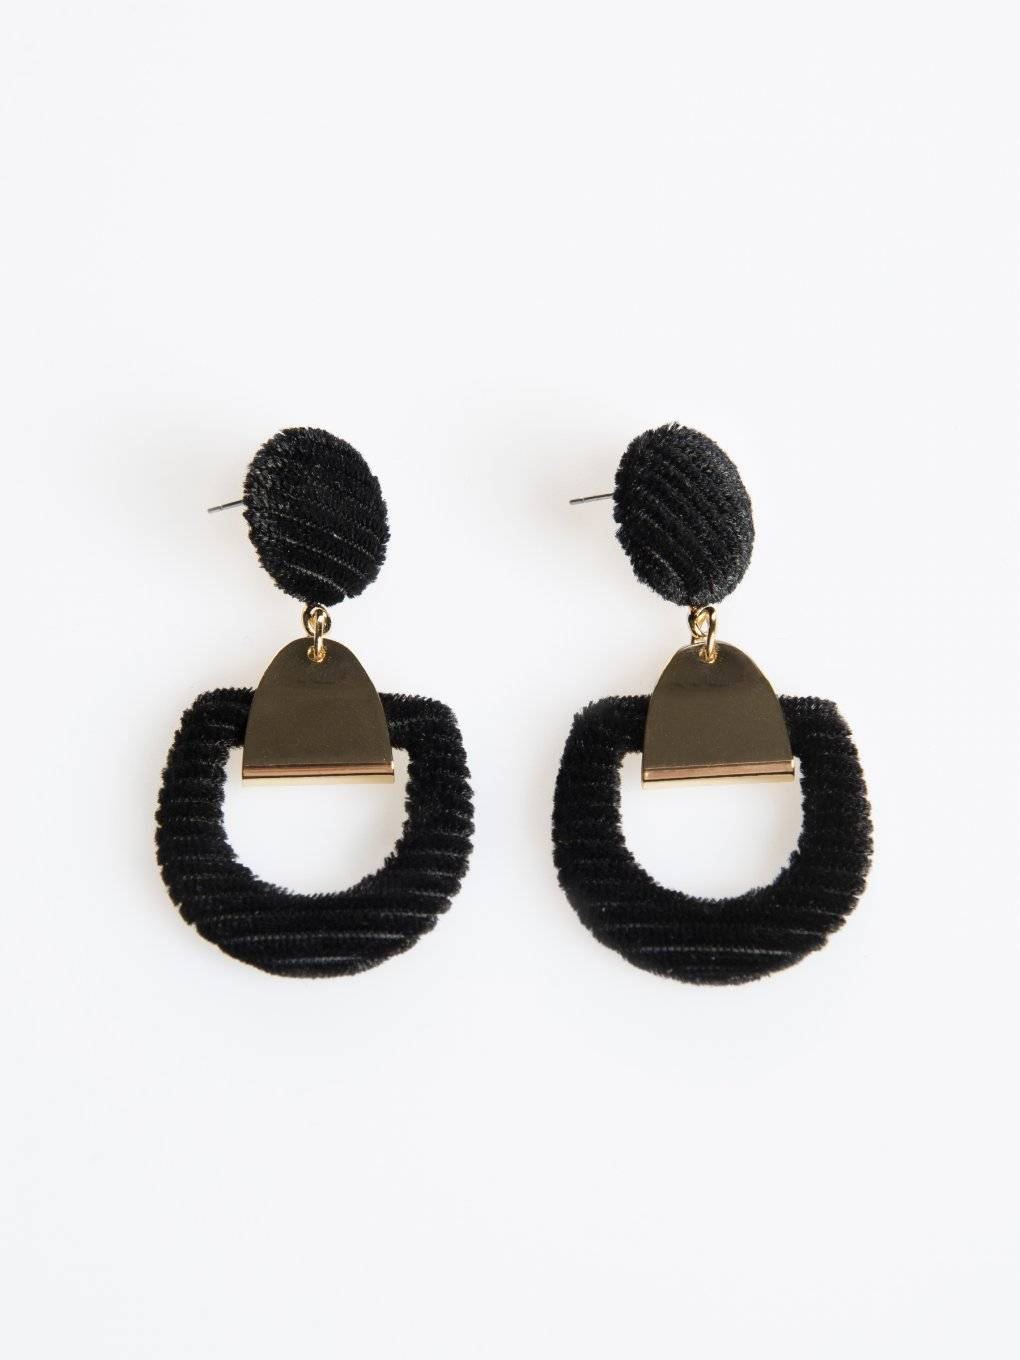 Earrings with corduroy detail